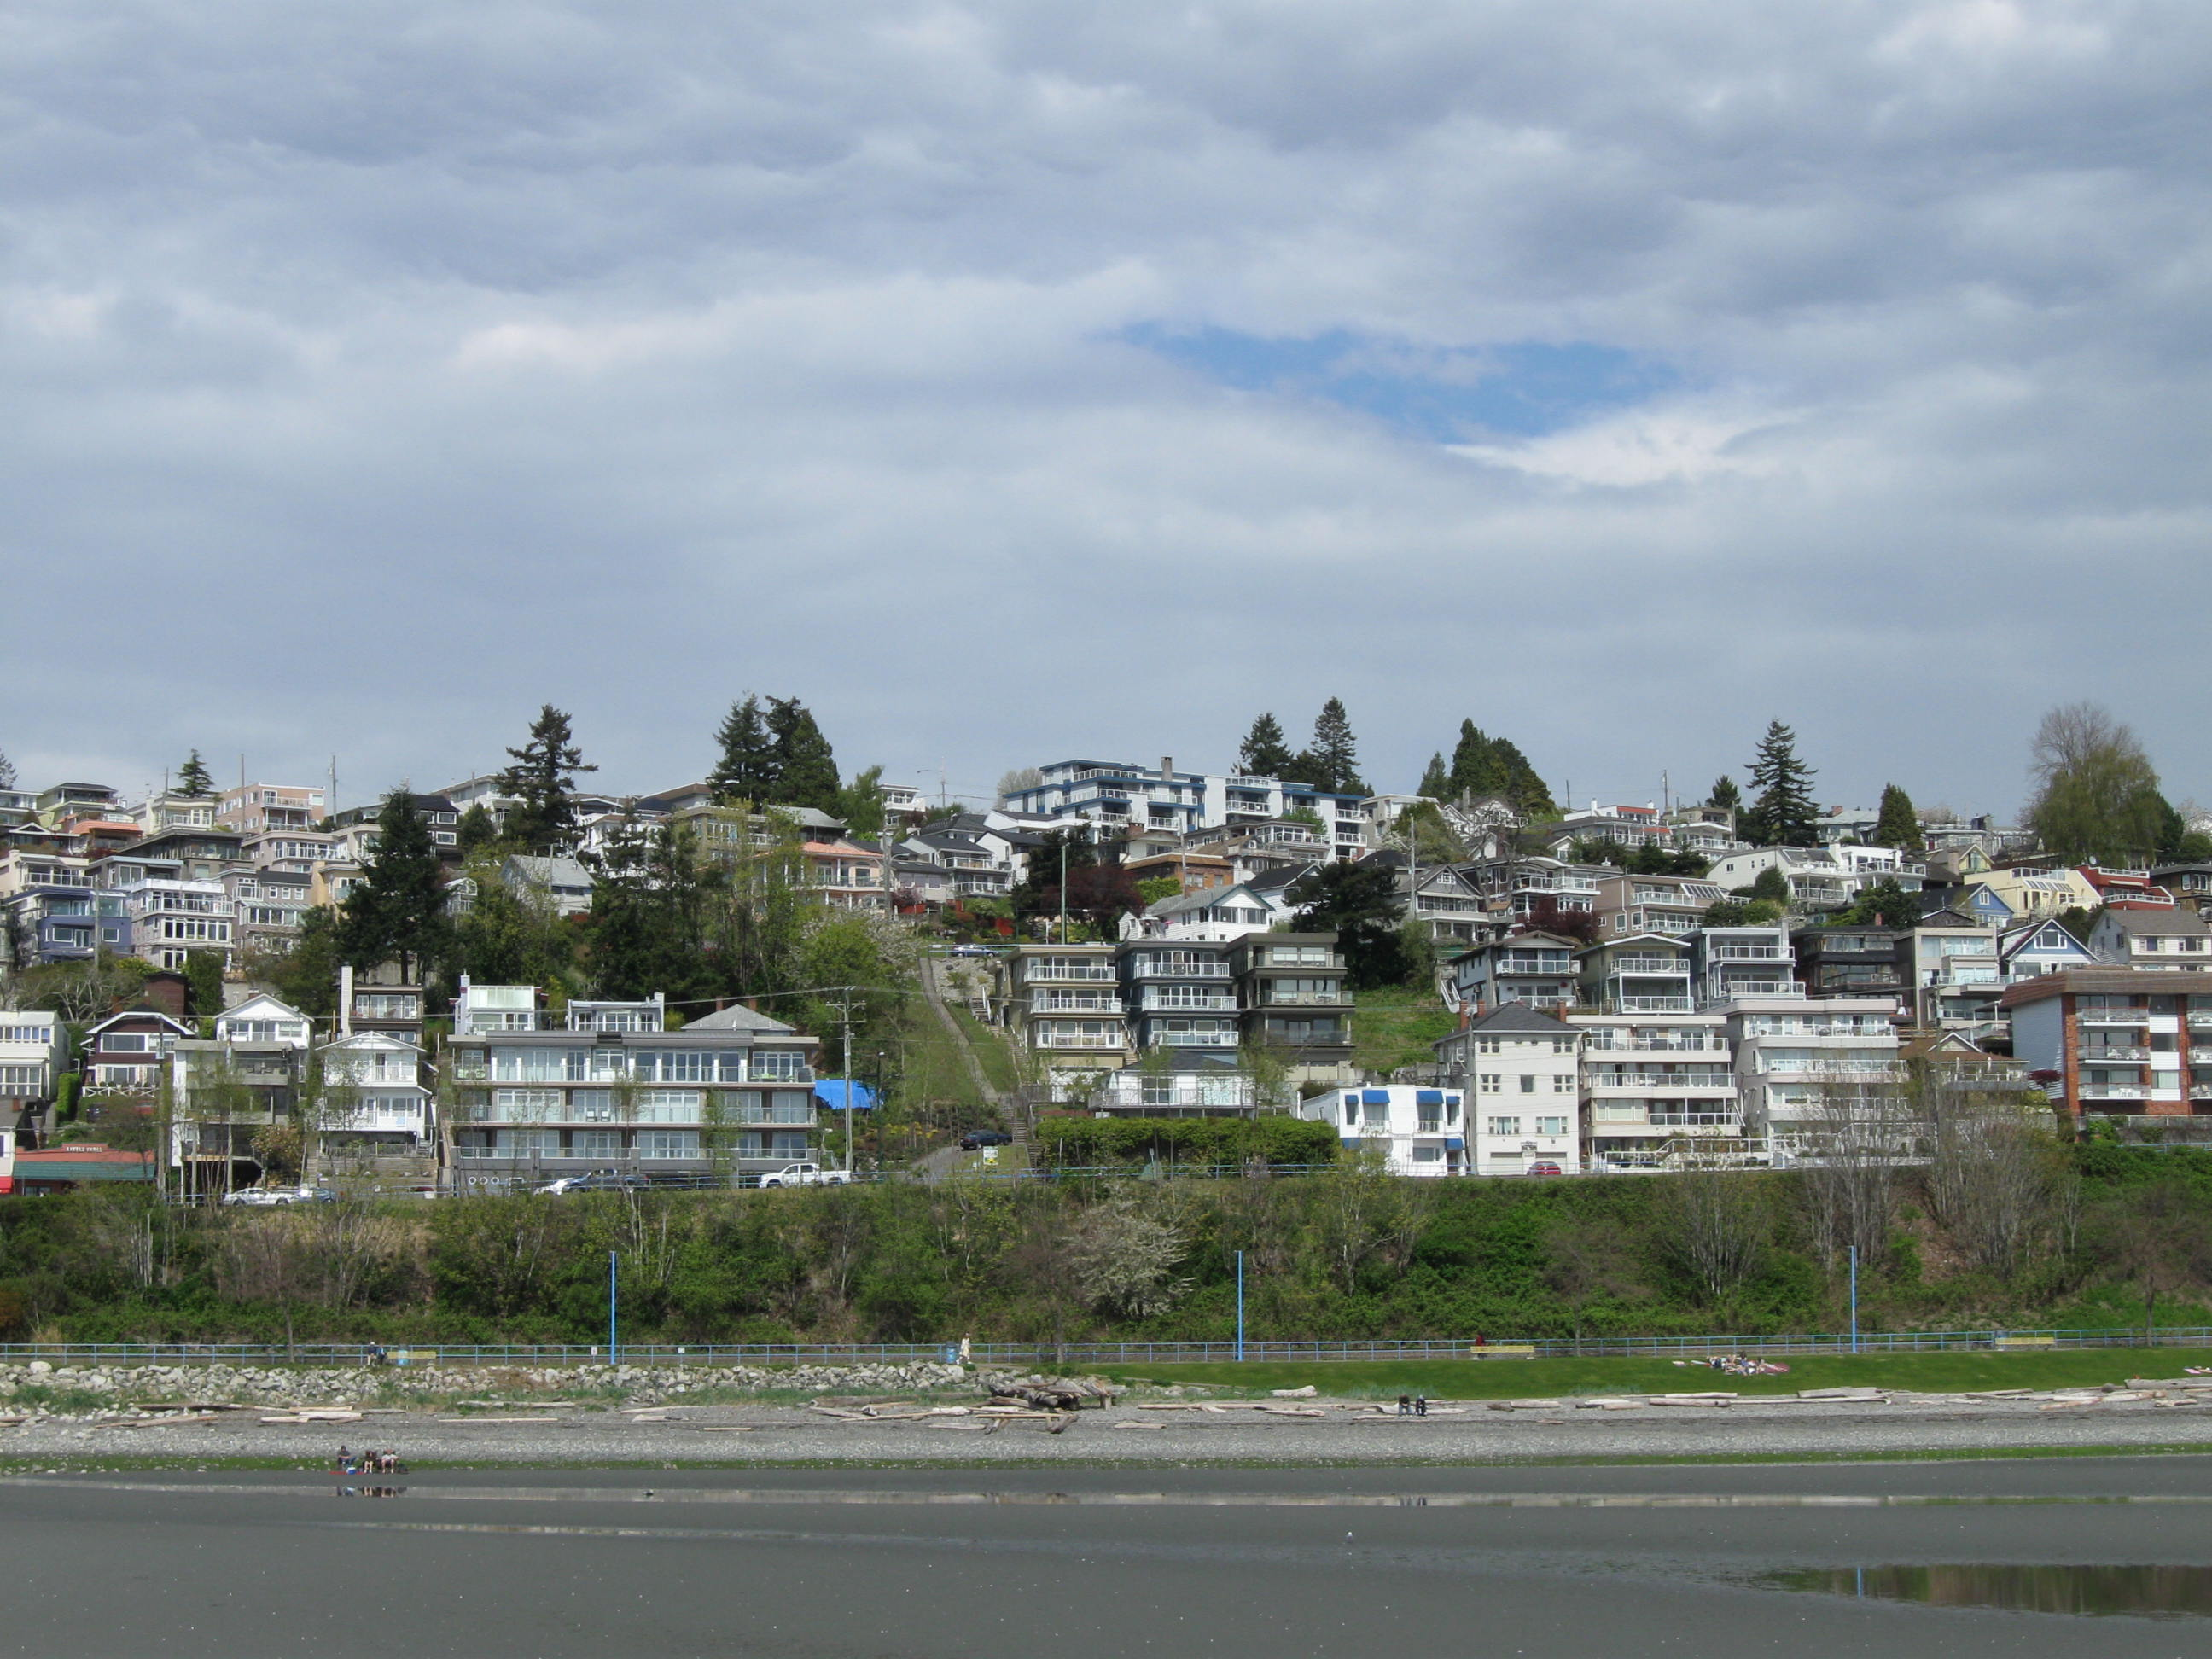 Template White Rock The City of White Rock as